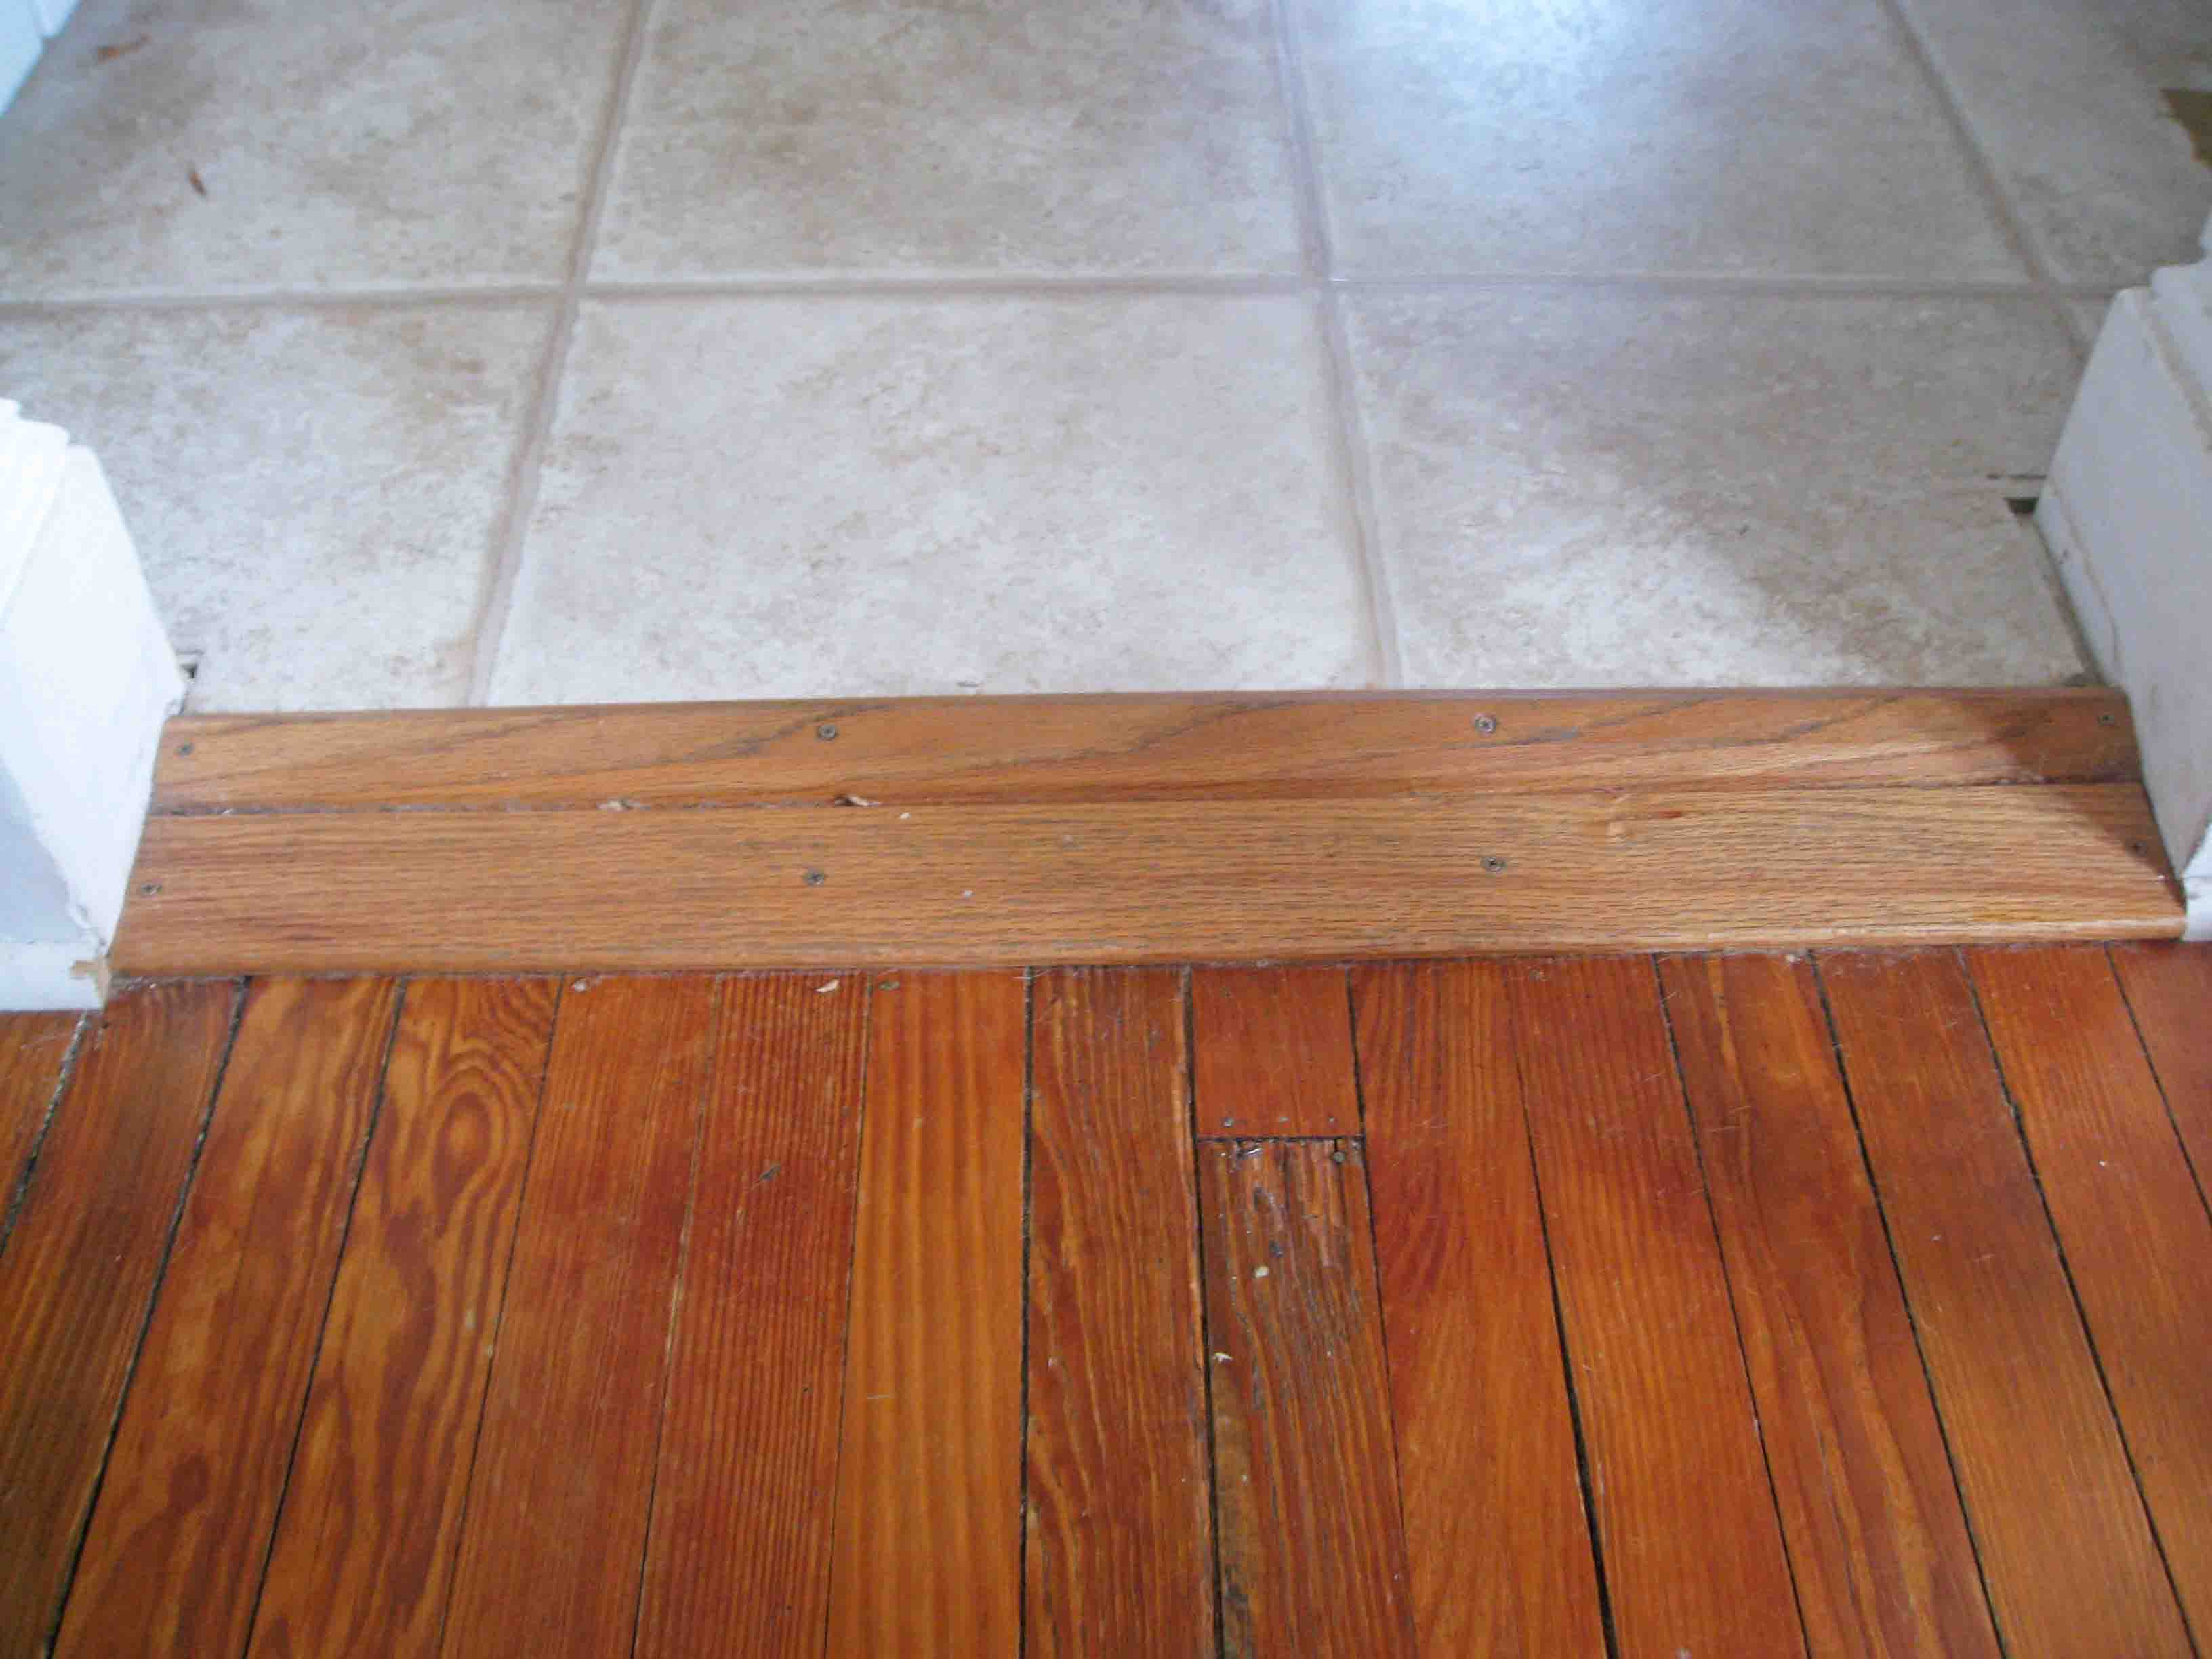 Floor Linoleum For Kitchens Layers Of Linoleum Sunshineandsawdust